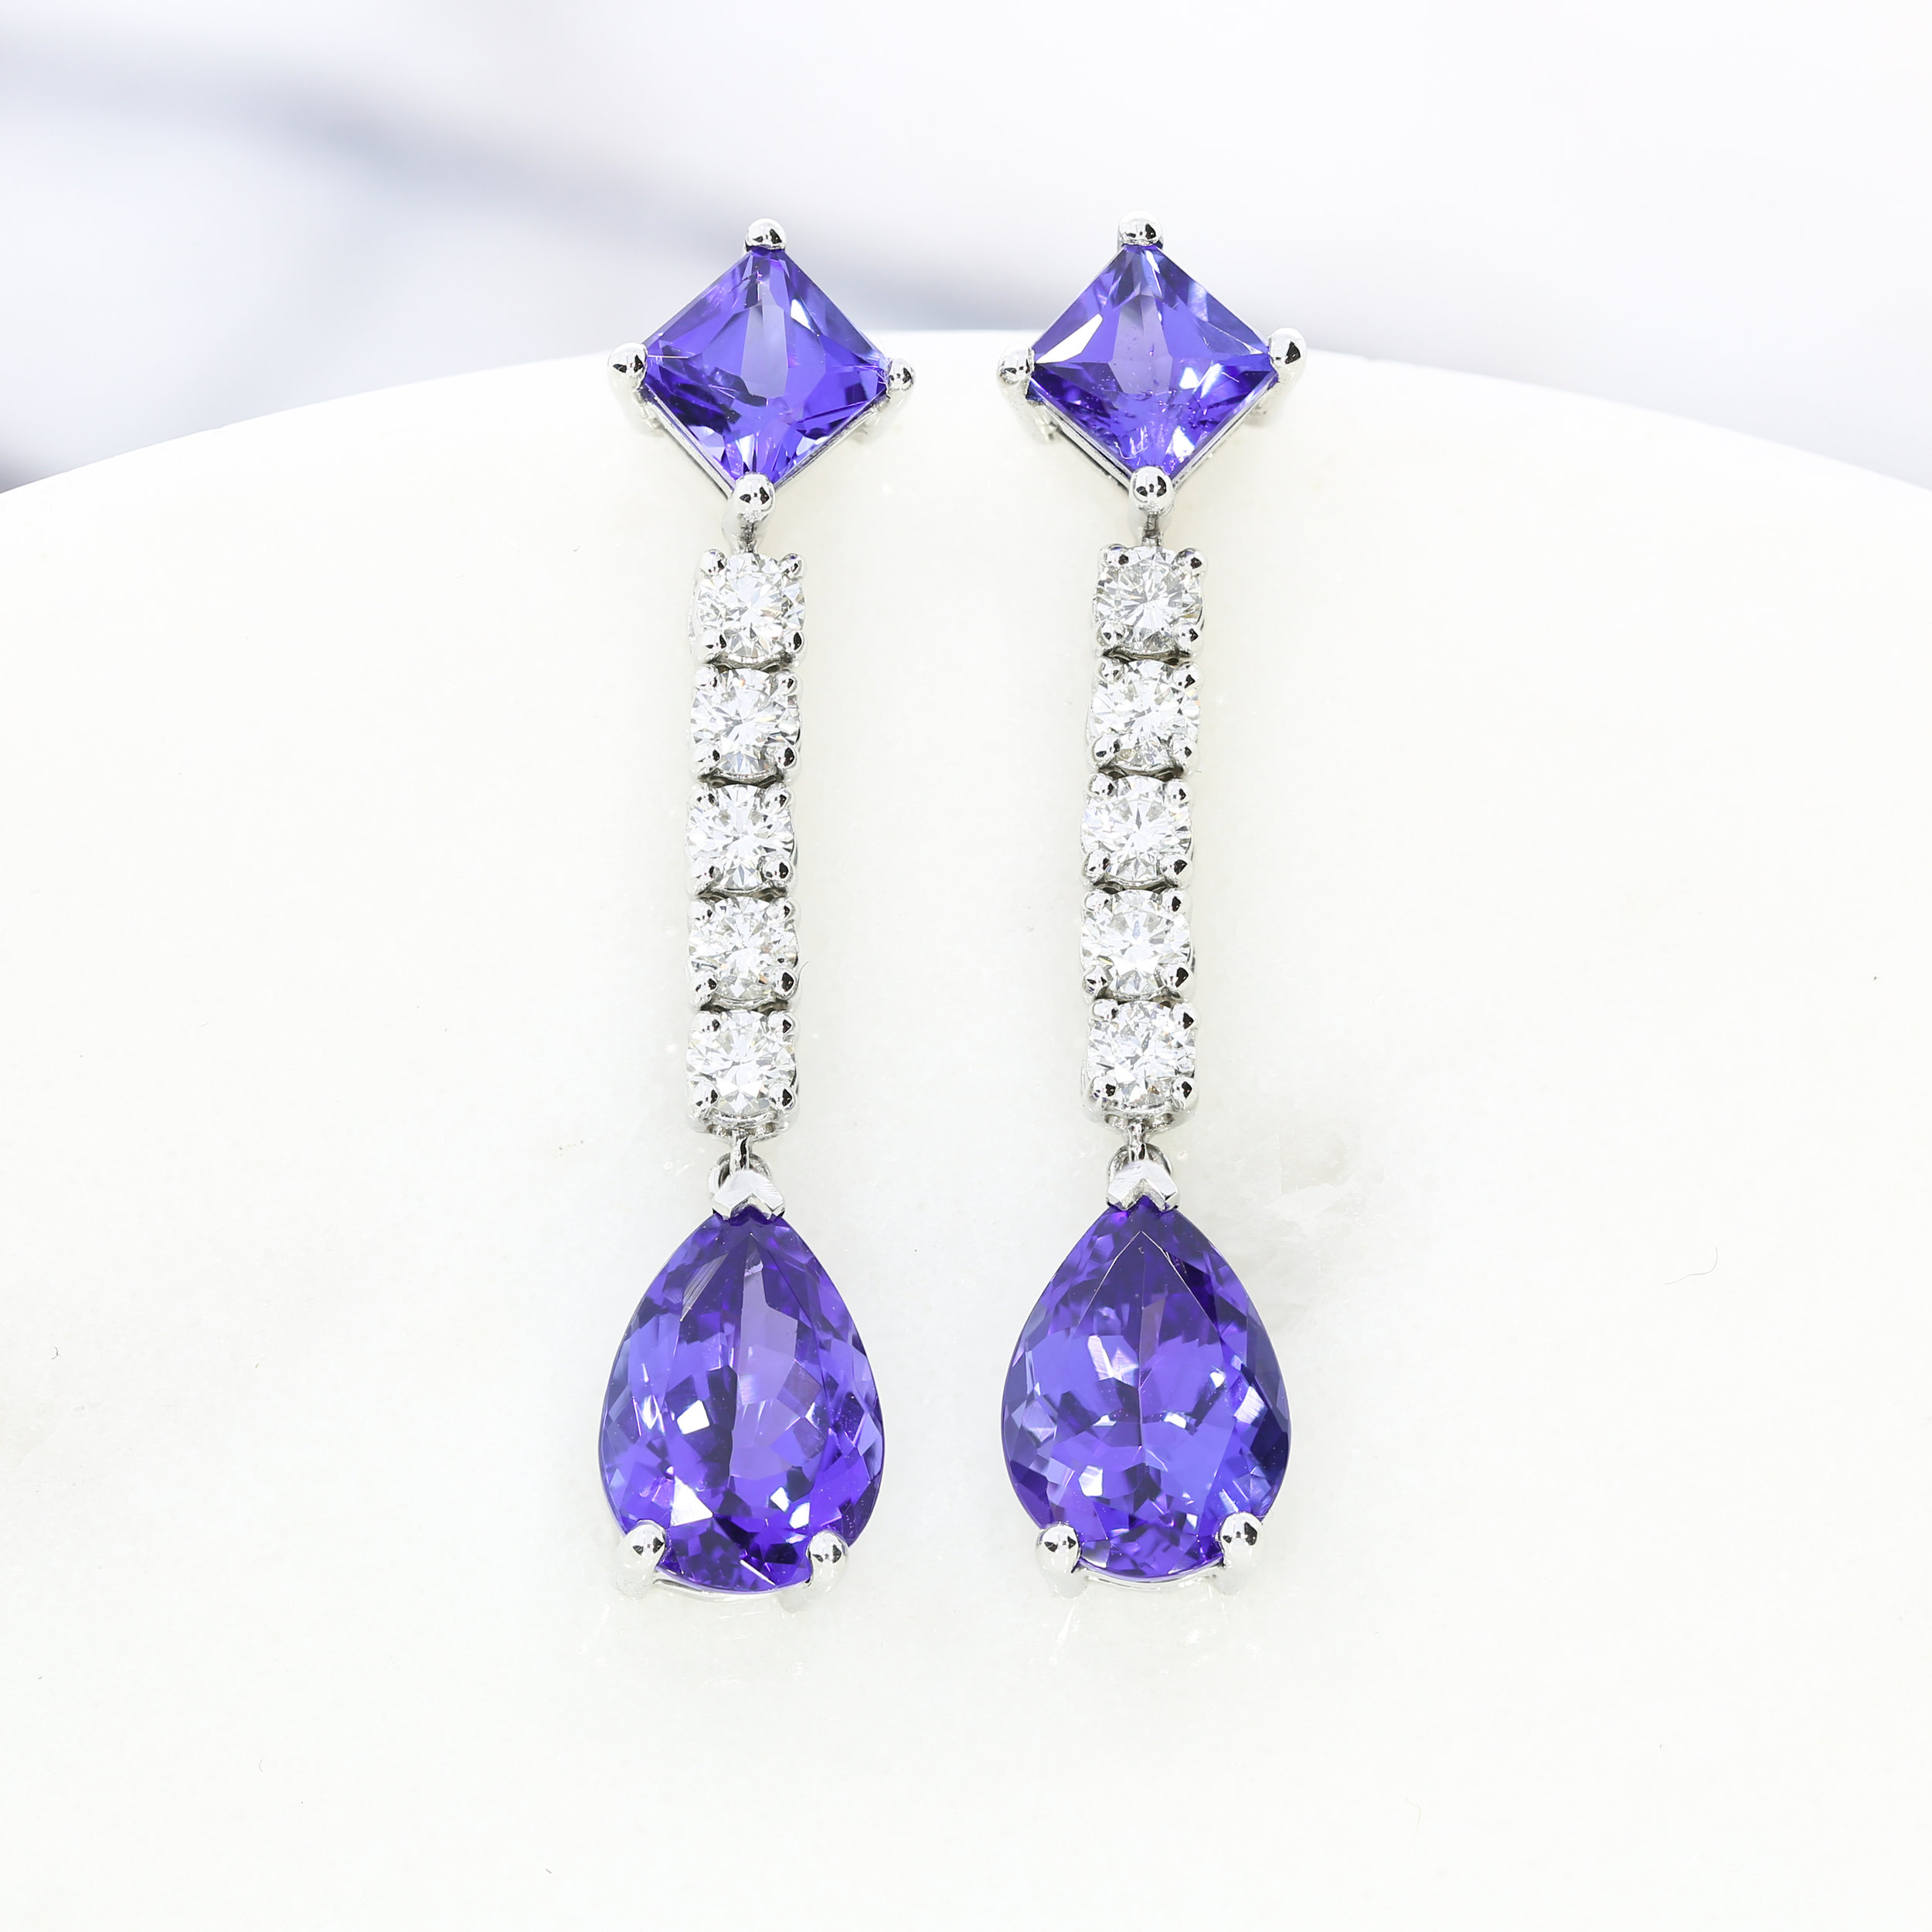 A bespoke Queensmith commission: tanzanite and diamond drop earrings